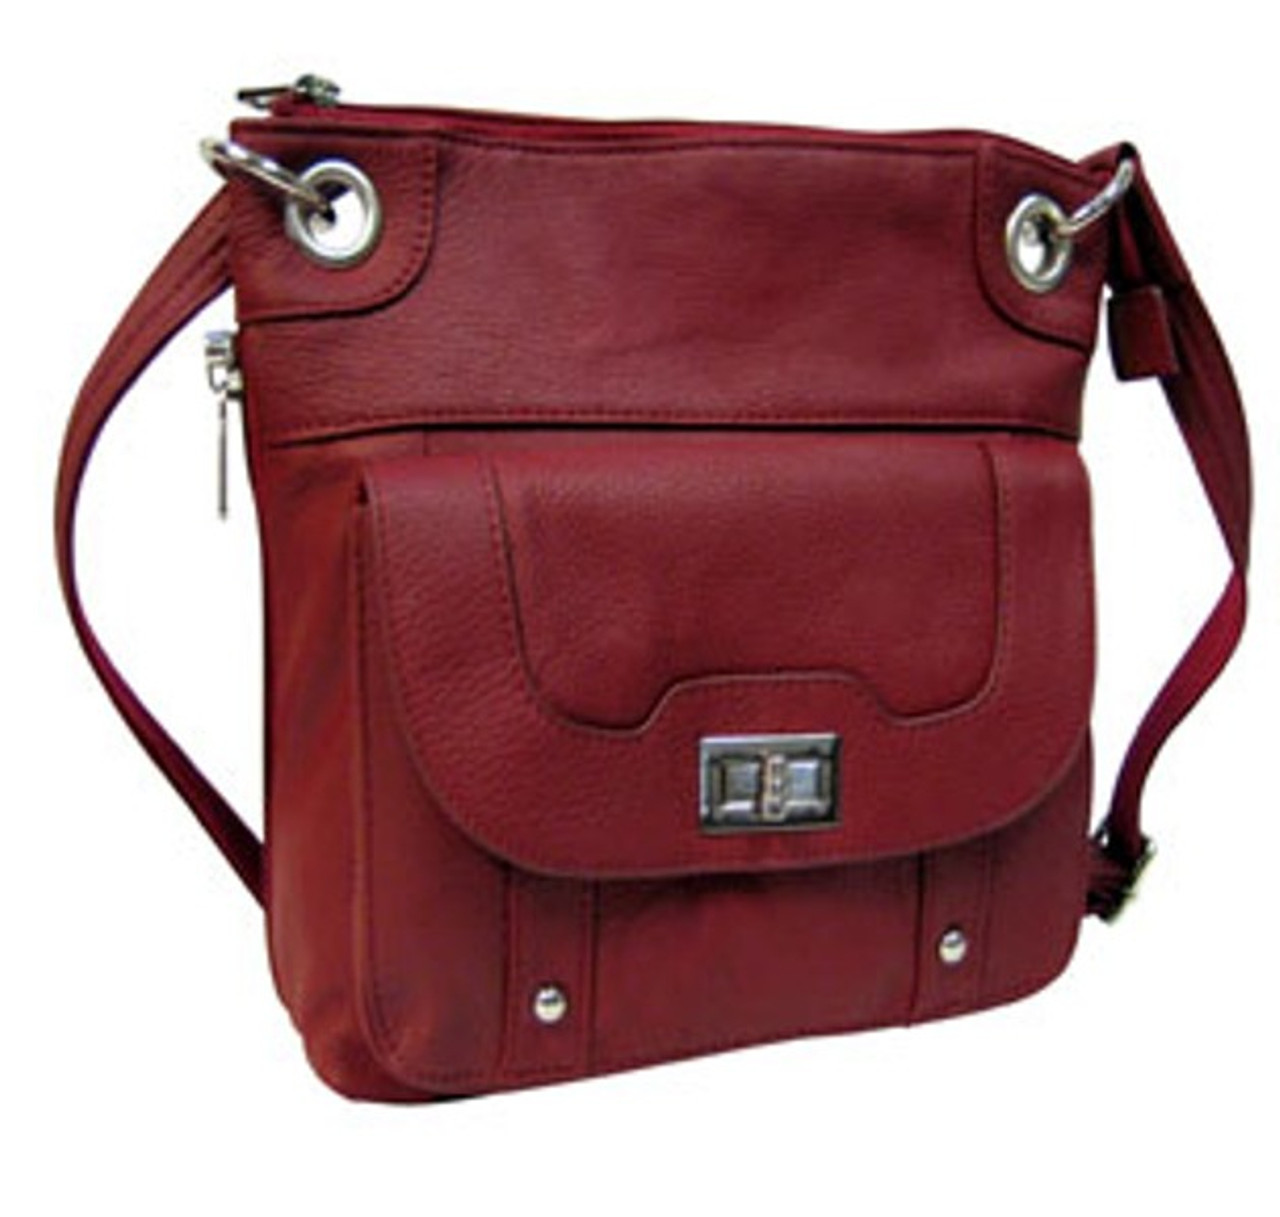 Buy our Roma Cross Body Concealed Carry Handbag/